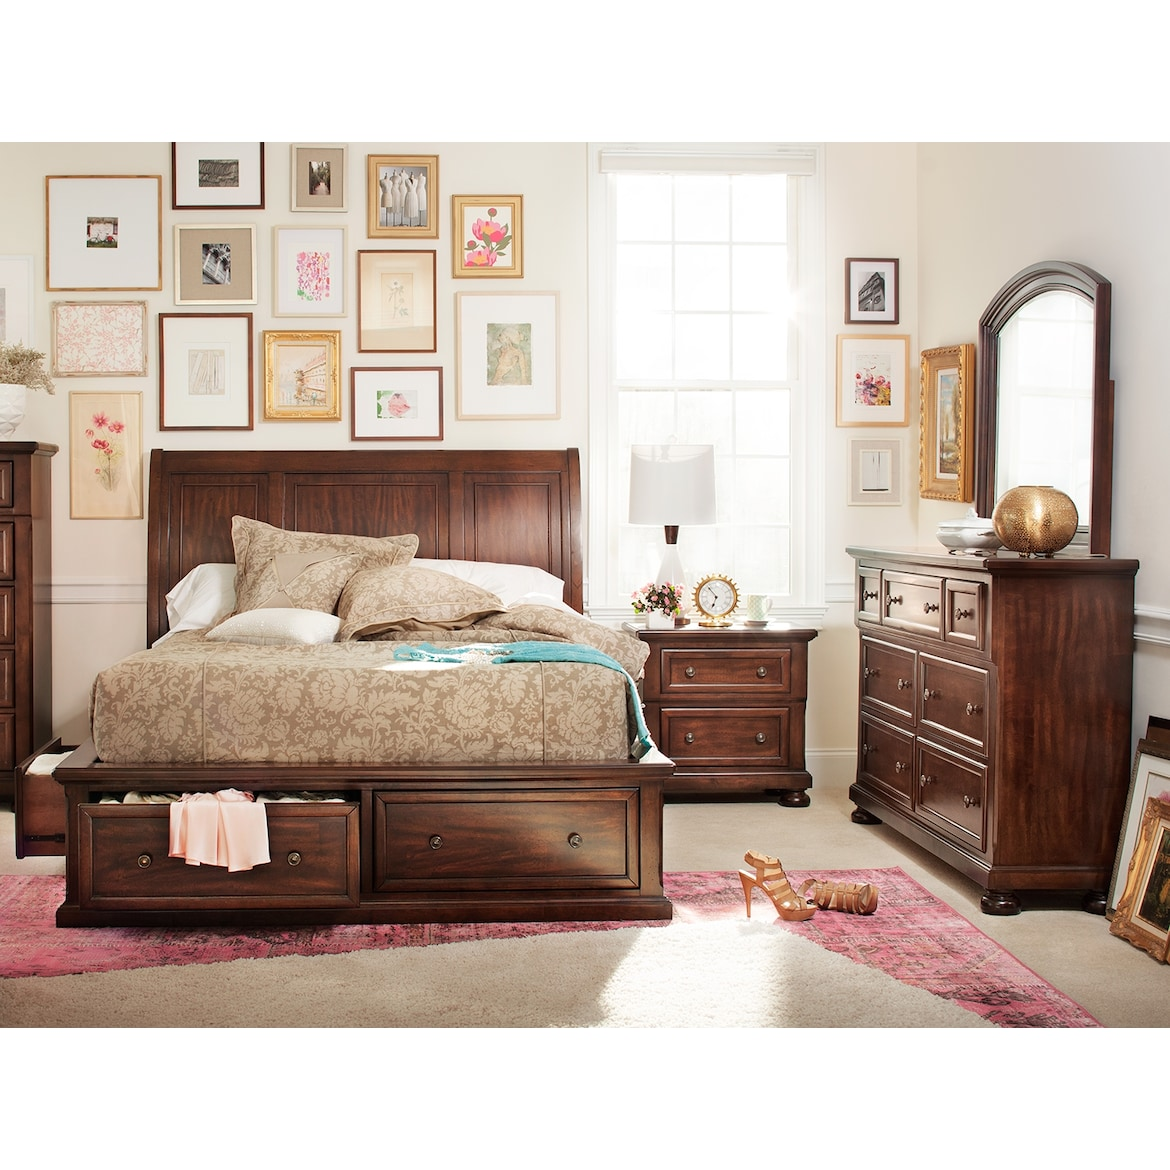 Peachy Hanover 6 Piece Storage Bedroom Set With Nightstand Dresser And Mirror Download Free Architecture Designs Terstmadebymaigaardcom